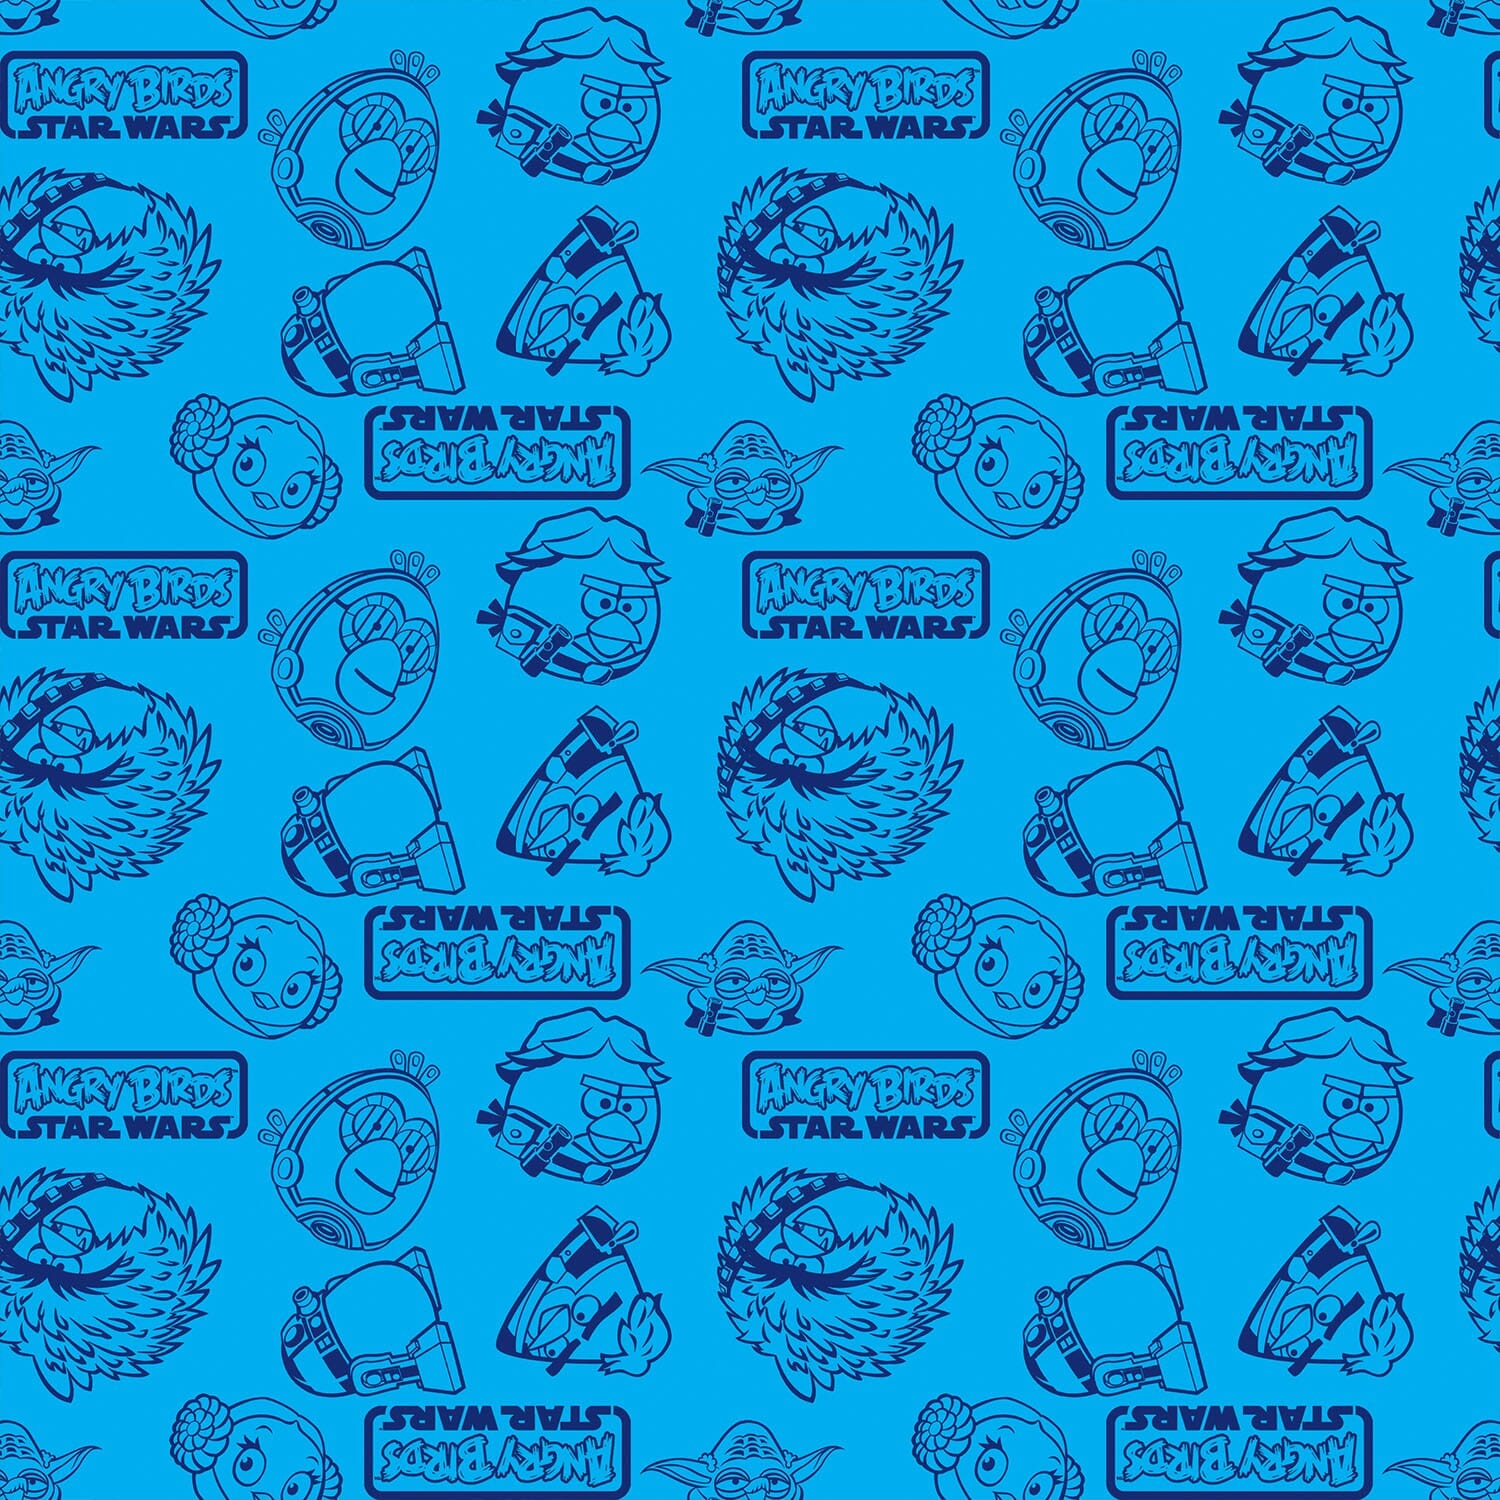 Patchwork Fabric Childrens Angry Birds Star Wars Fabric Outlines Blue